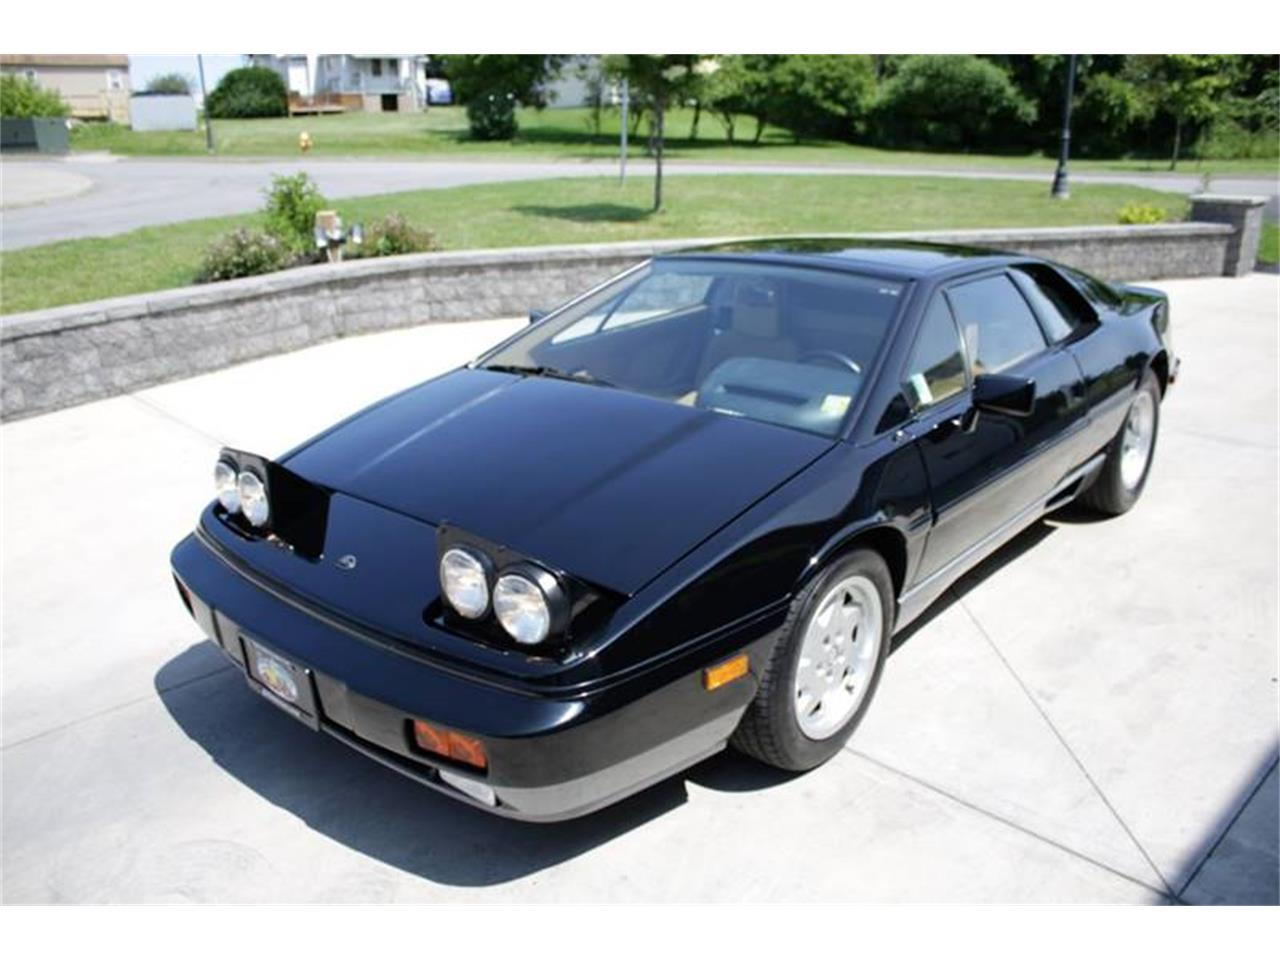 Large Picture of 1988 Lotus Esprit - $26,495.00 Offered by Great Lakes Classic Cars - QE3Z